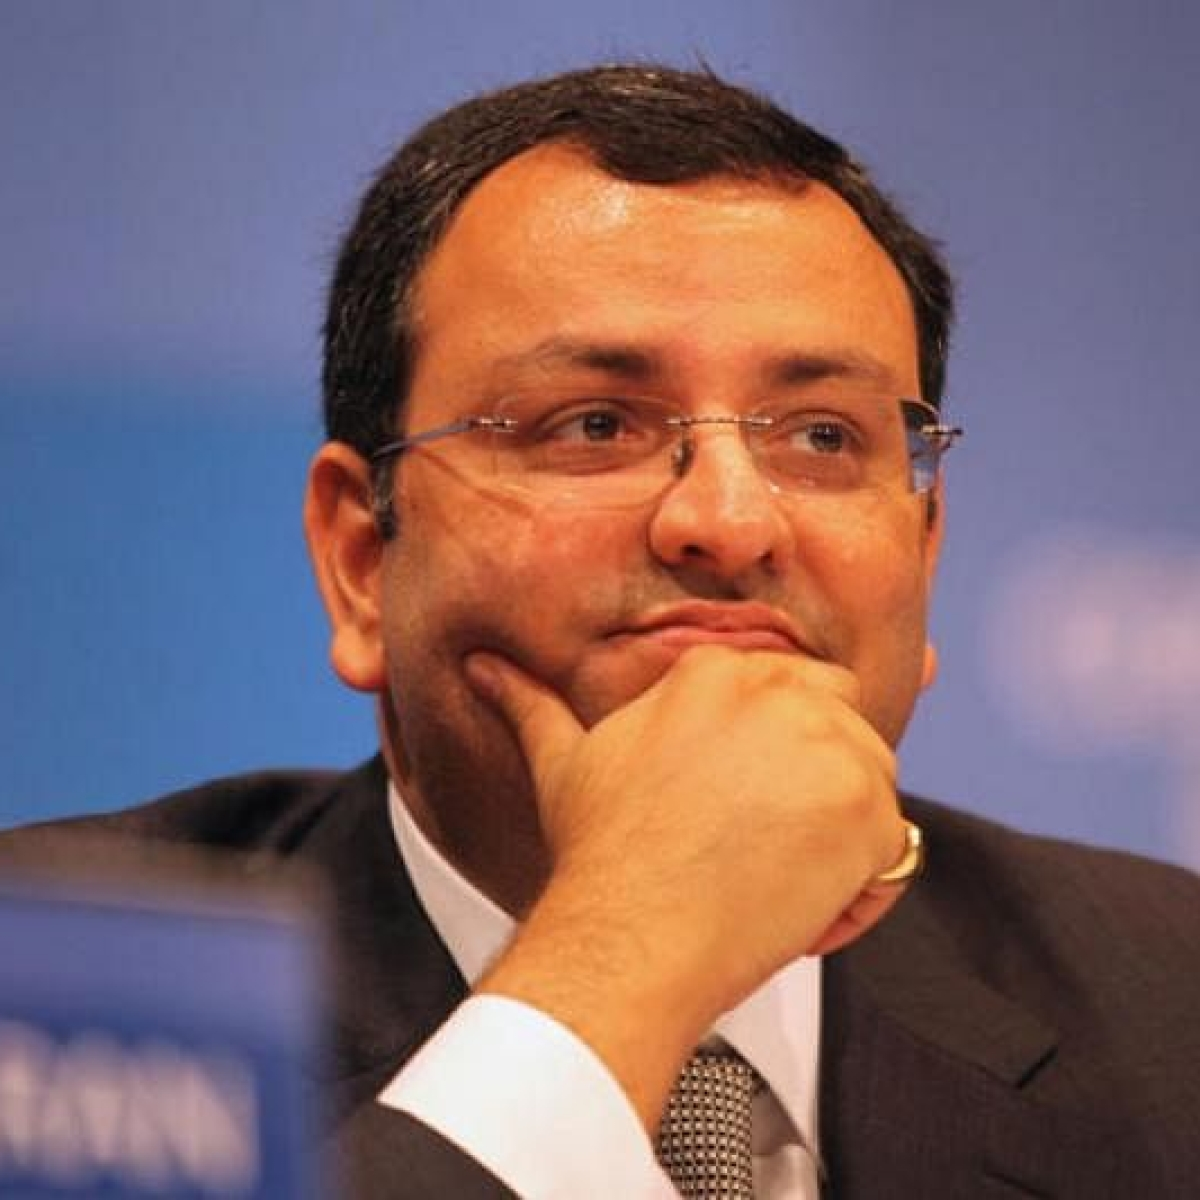 NCLAT orders reinstatement of Cyrus Mistry as Chairman of Tata Sons